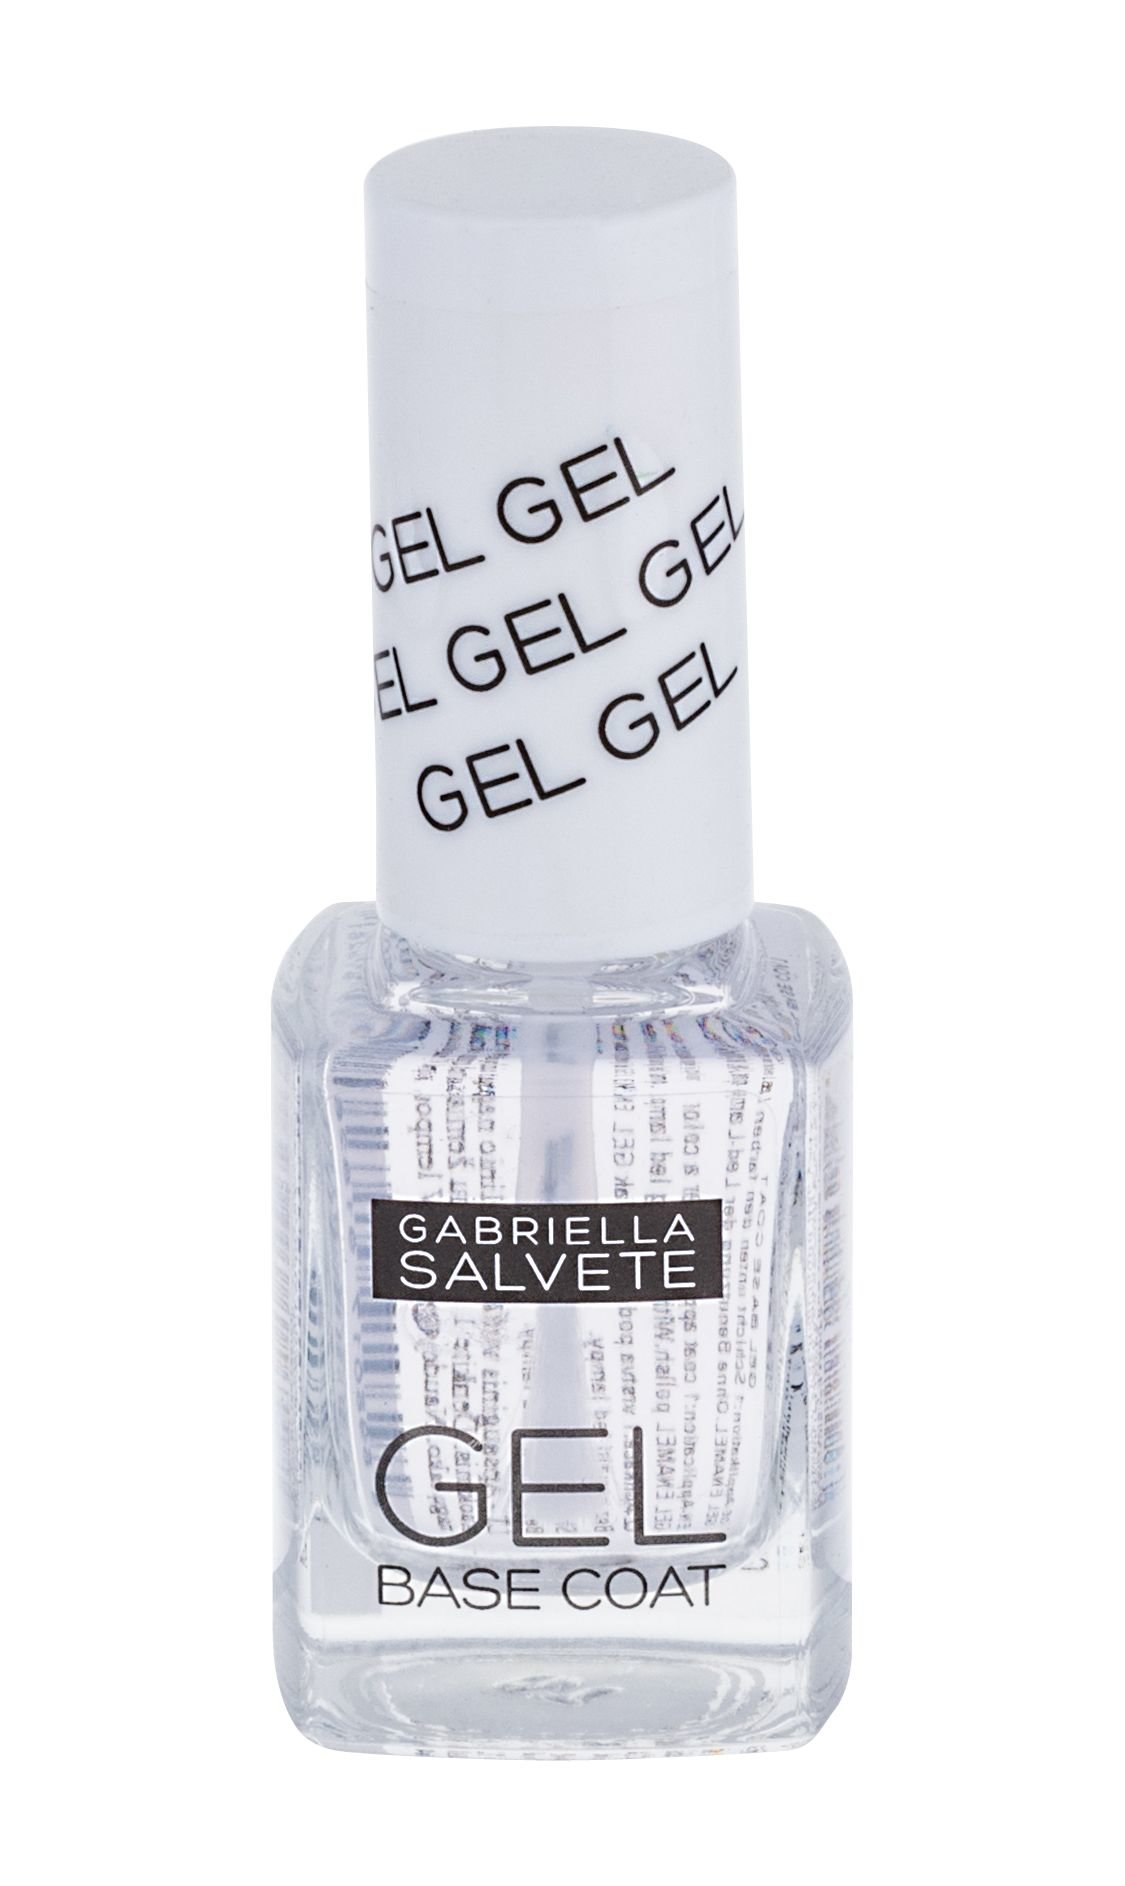 Gabriella Salvete Nail Care Cosmetic 11ml 16